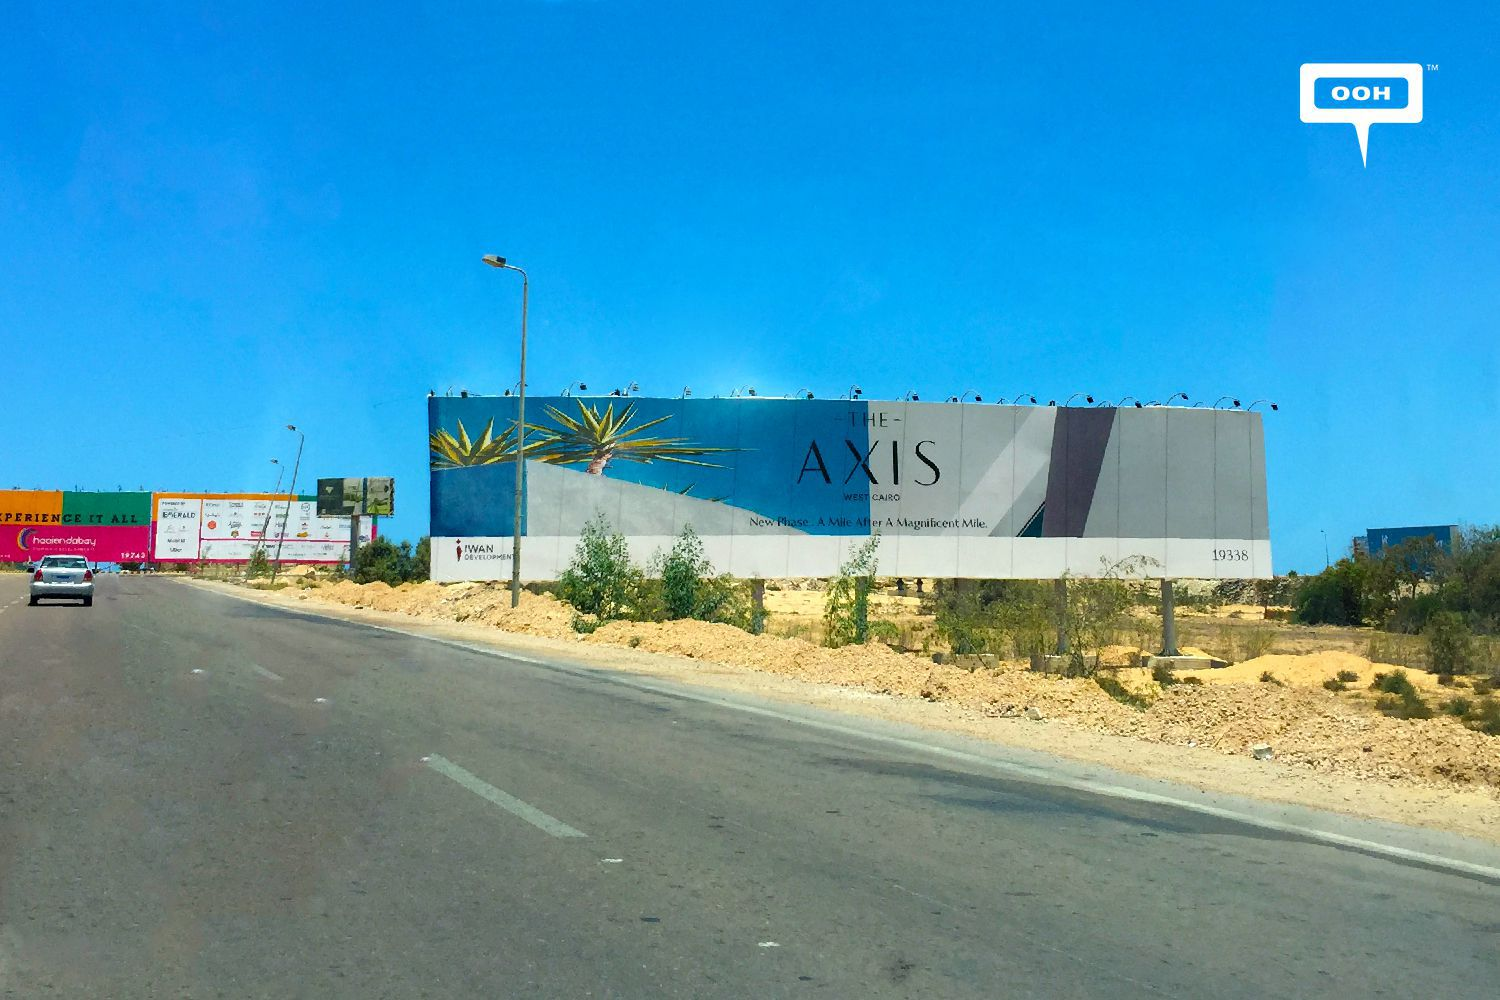 The North Coast billboards freshen our summer with several OOH campaigns-04